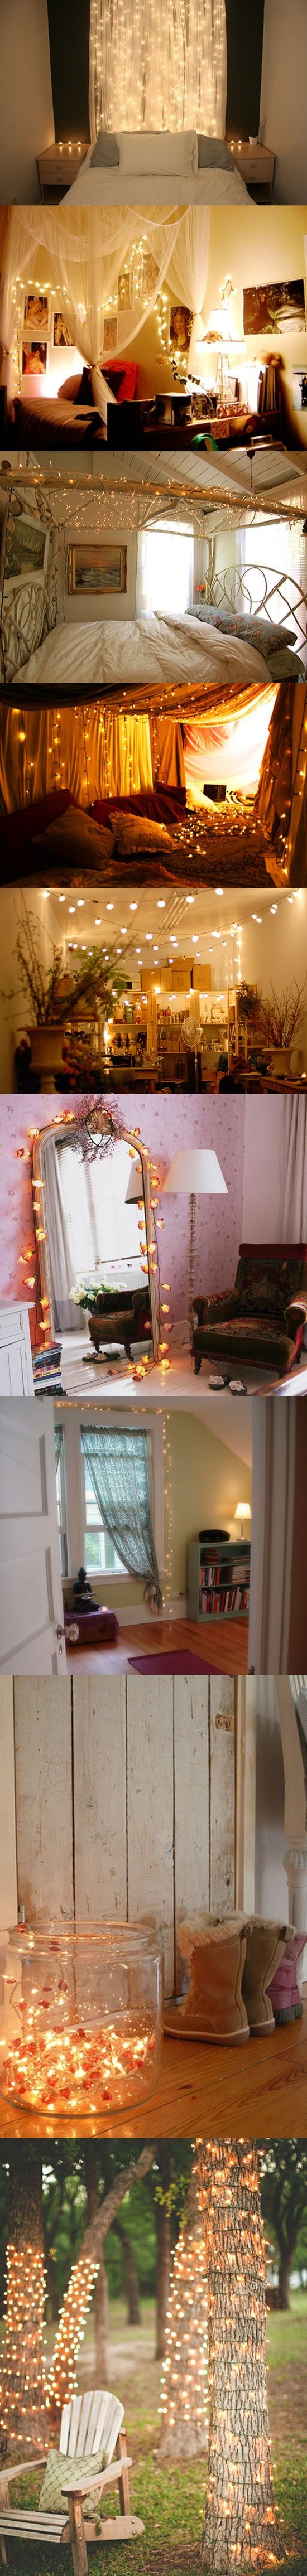 String lights, Design and Decorating ideas on Pinterest